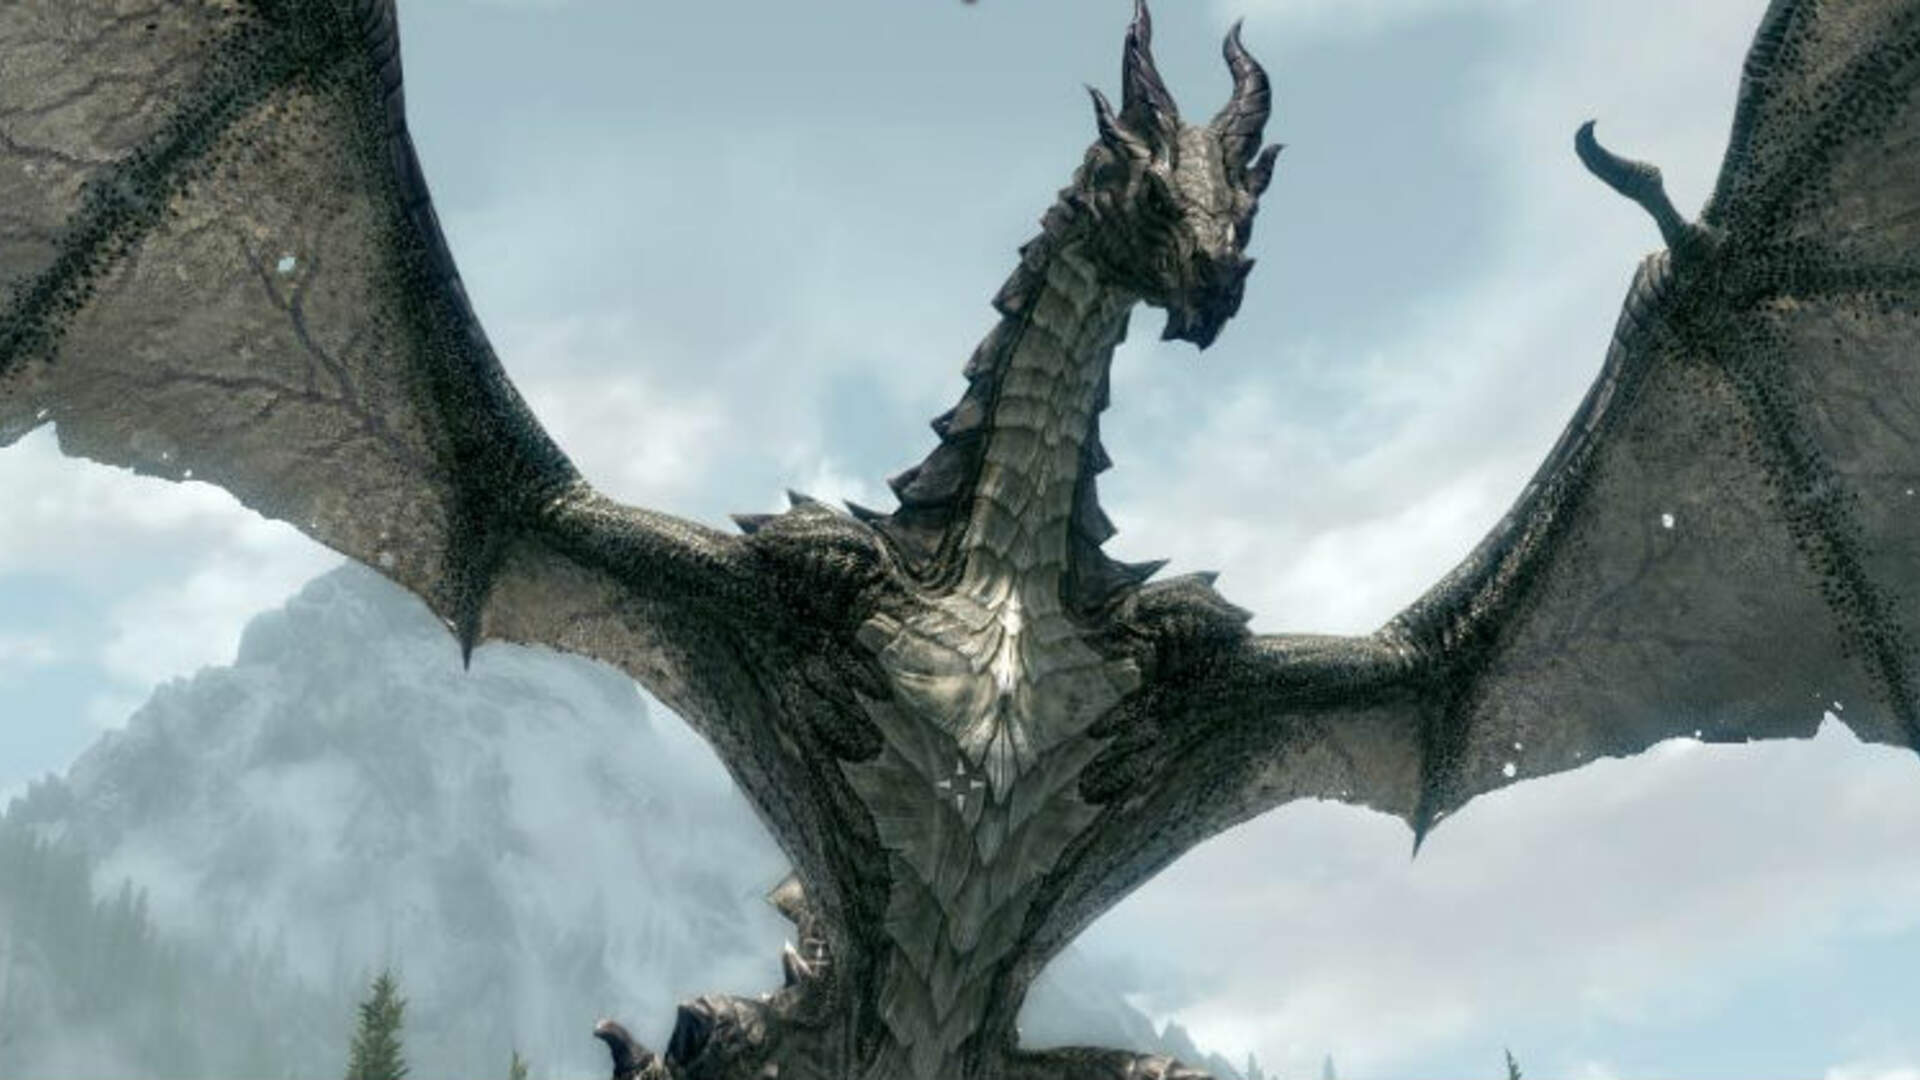 Skyrim Special Edition Guide - Mods, Guide, Tips, and Every Detail - Switch, PS4, Xbox One, PC